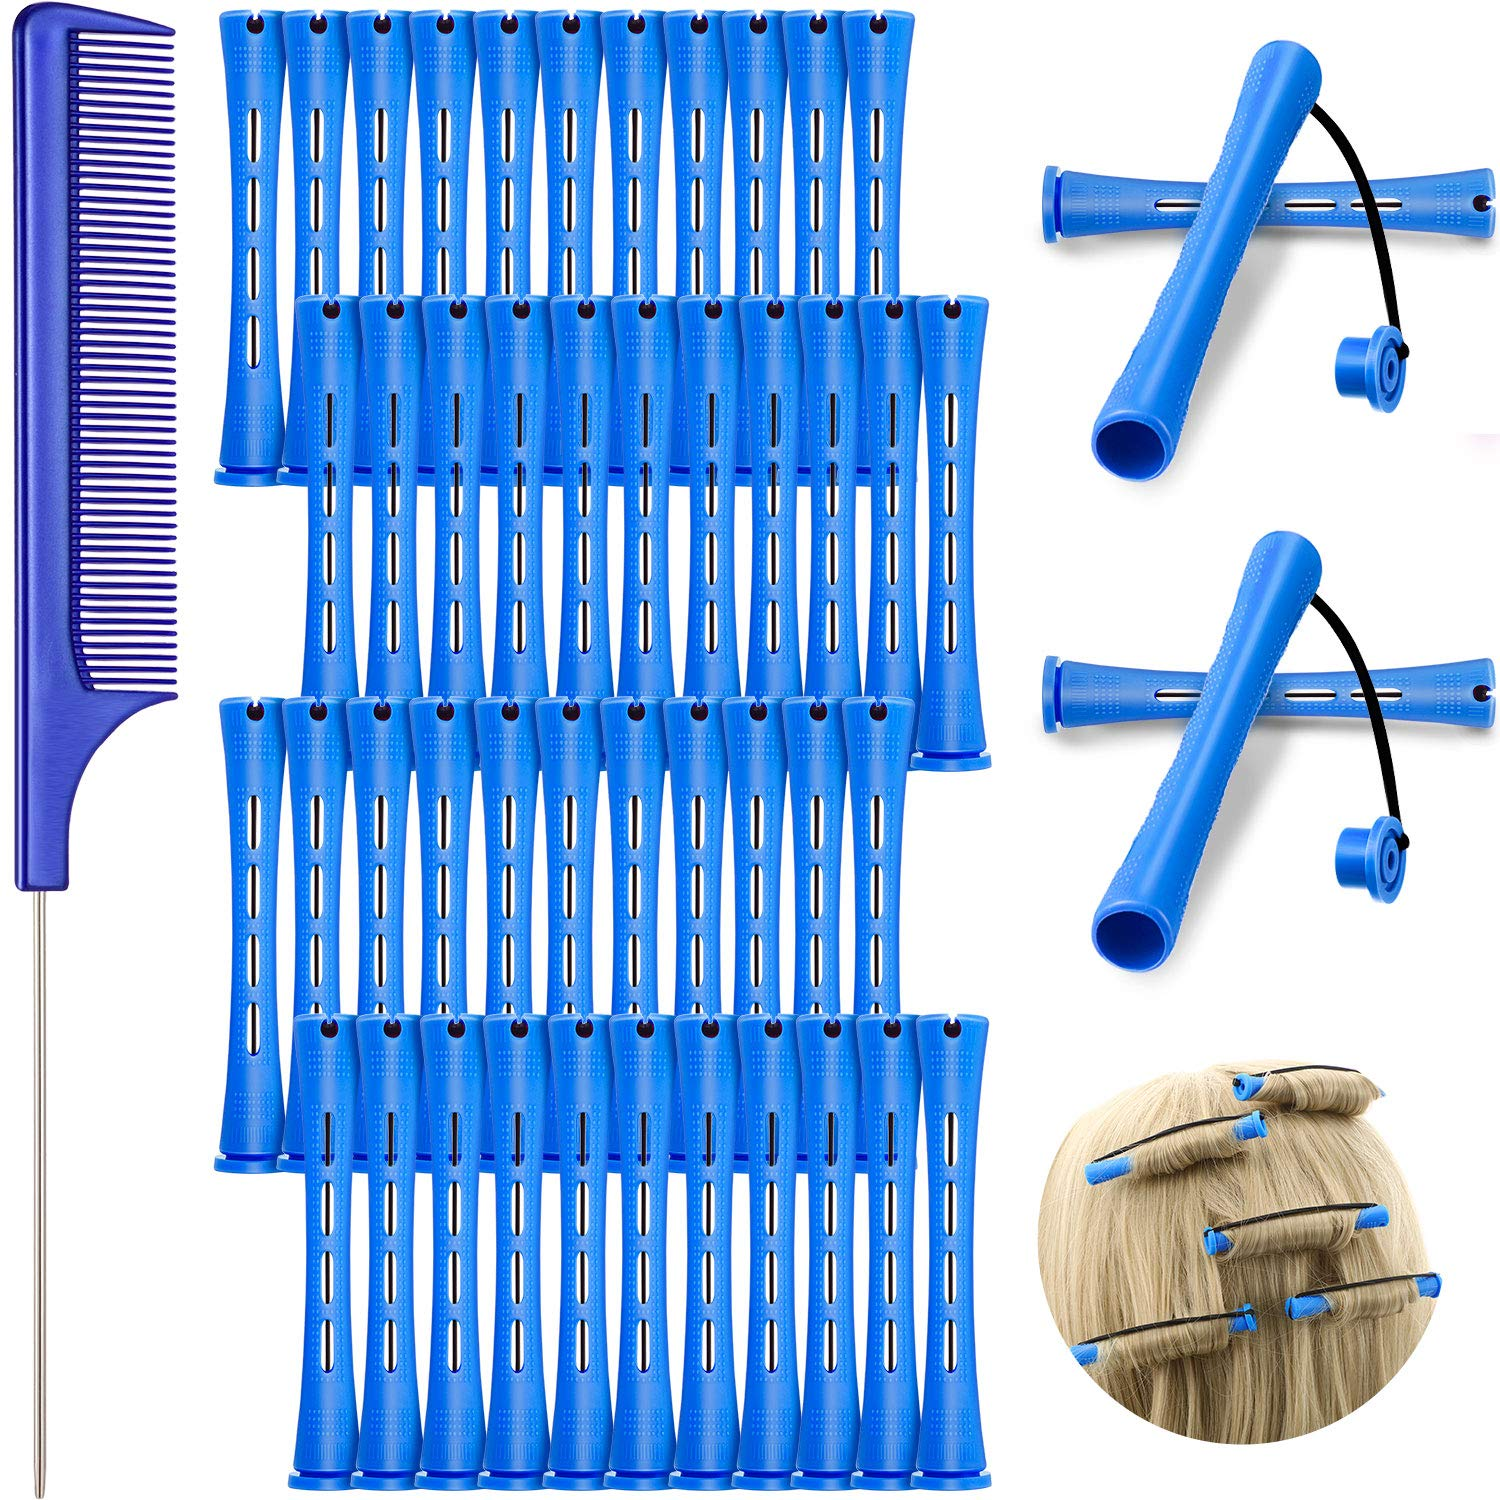 48 Pieces Hair Perm Rods Cold Wave Rods Plastic Perming Rods Curlers Hair Rollers with Steel Pintail Comb Rat Tail Comb for Hairdressing Styling Tools (Blue, 0.35 inch/ 0.9 cm)